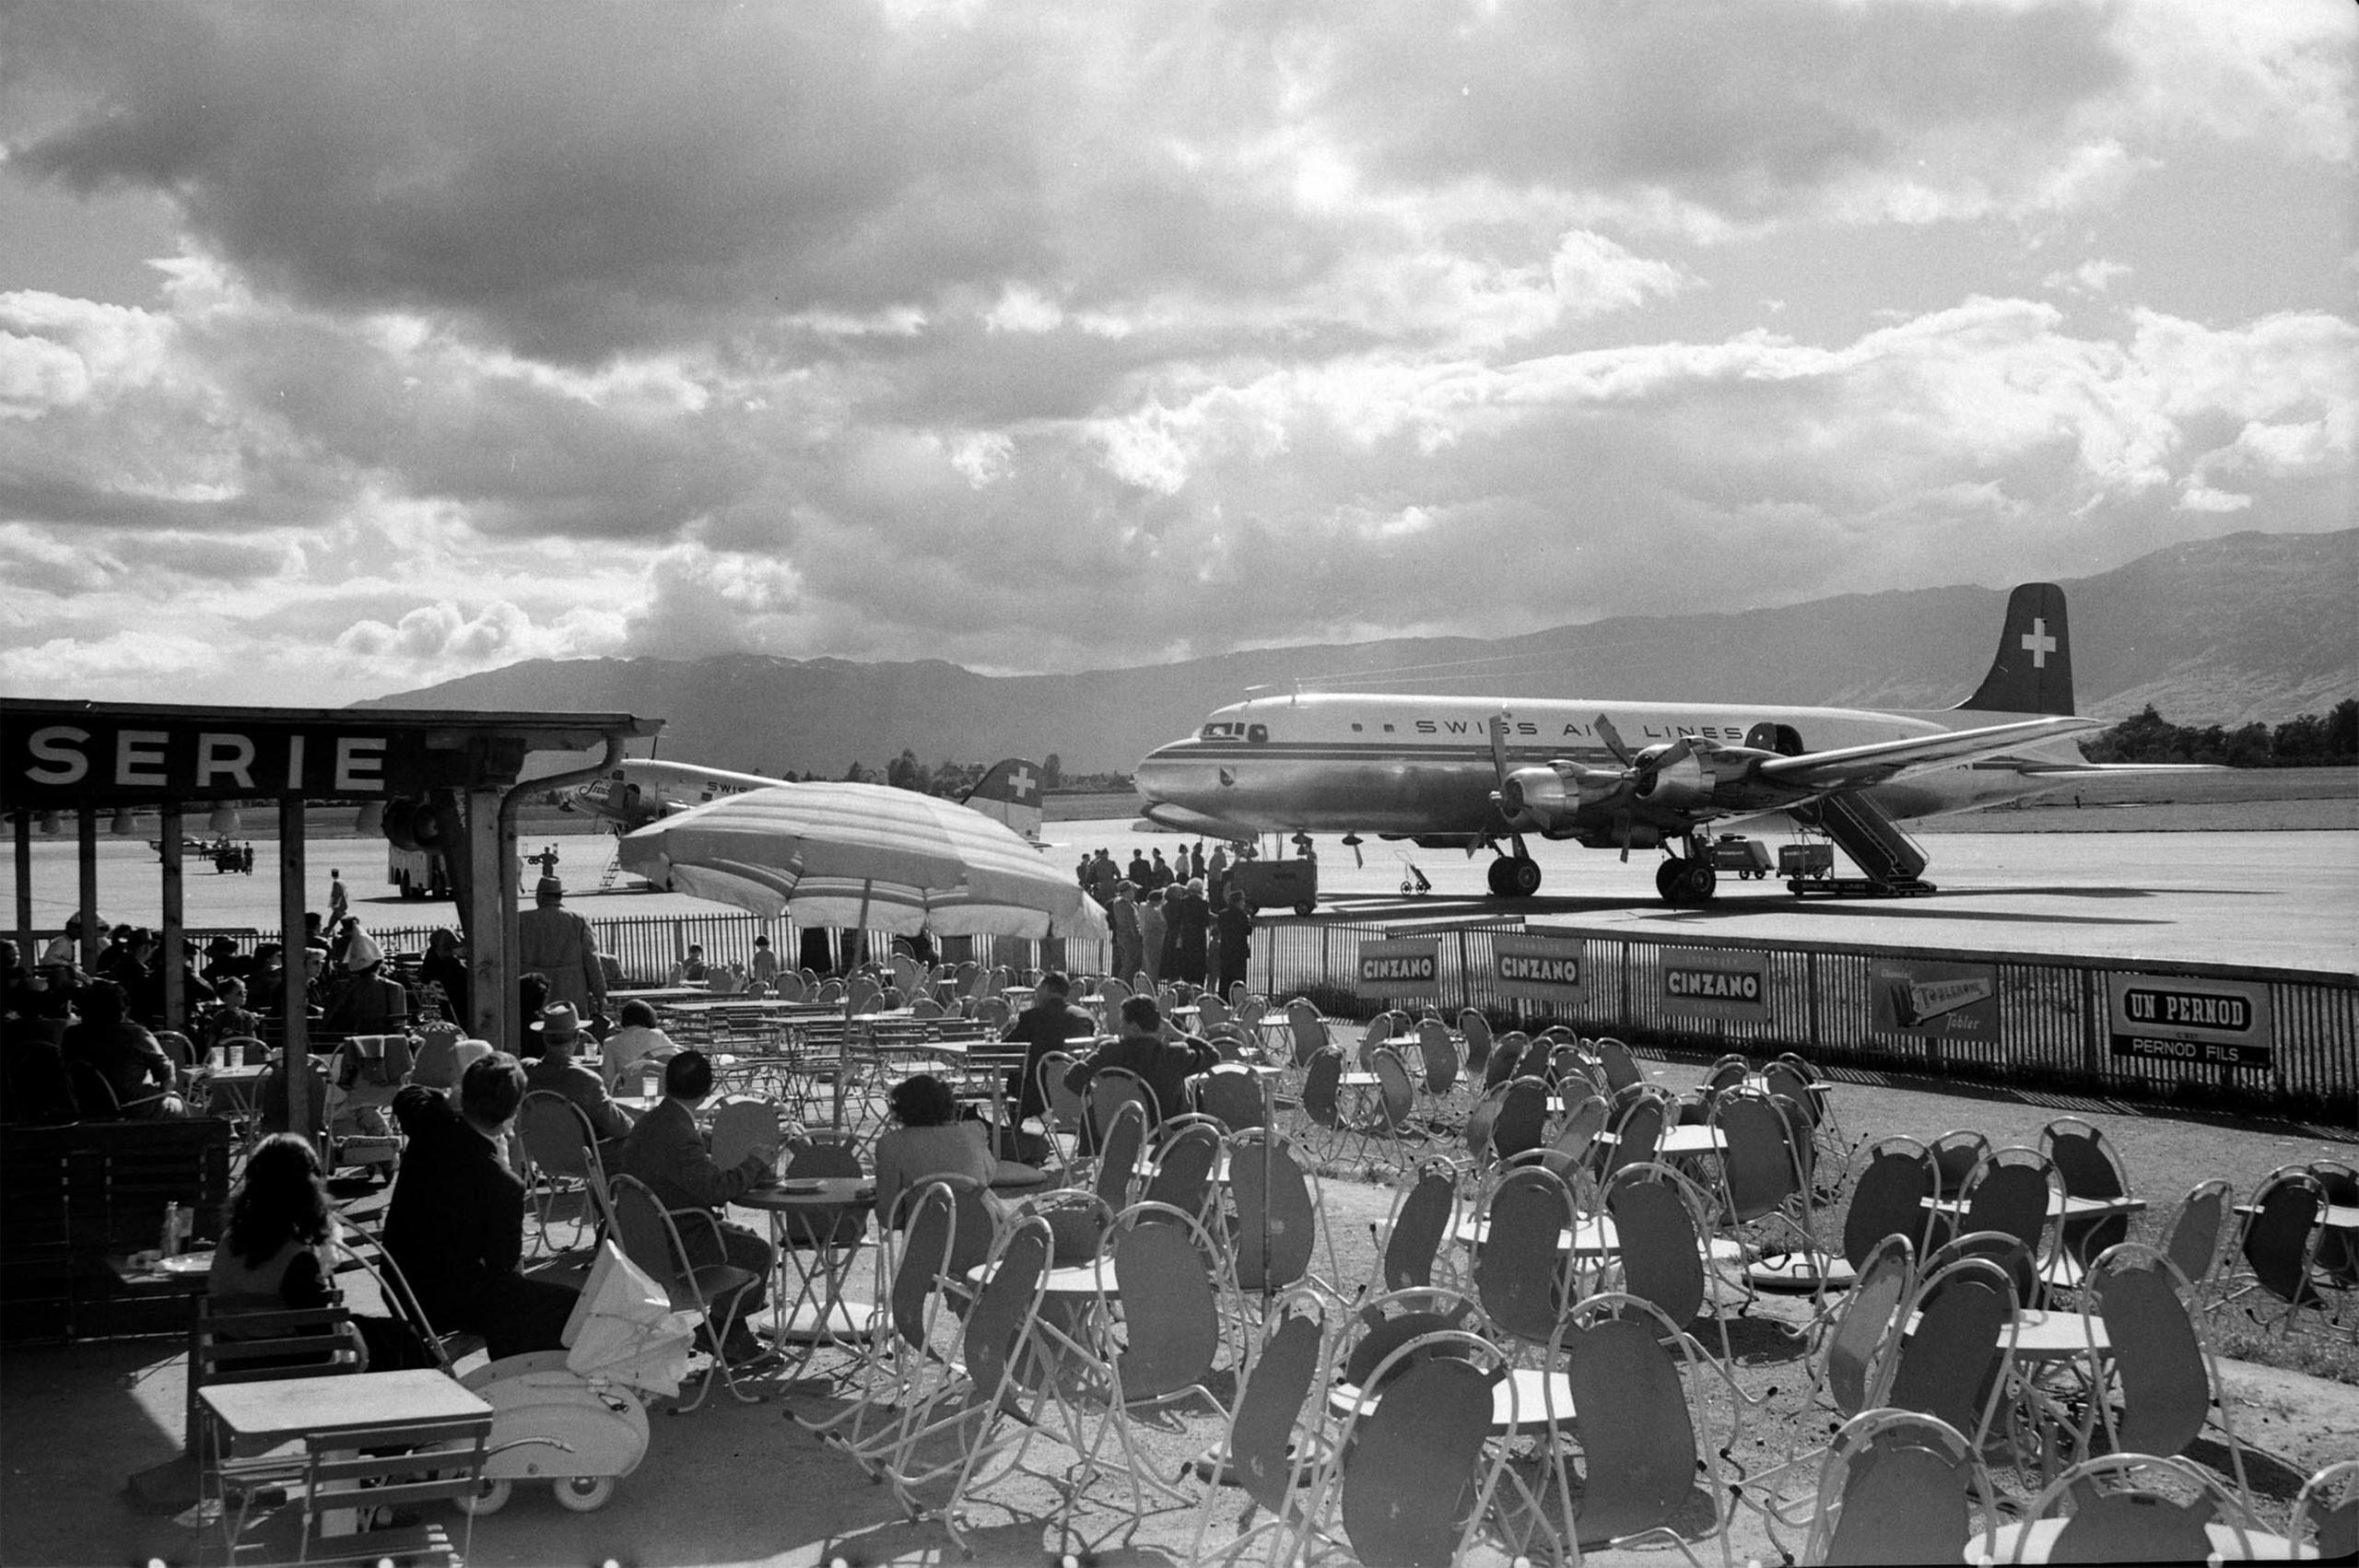 Airport terrace of the refreshment bar.